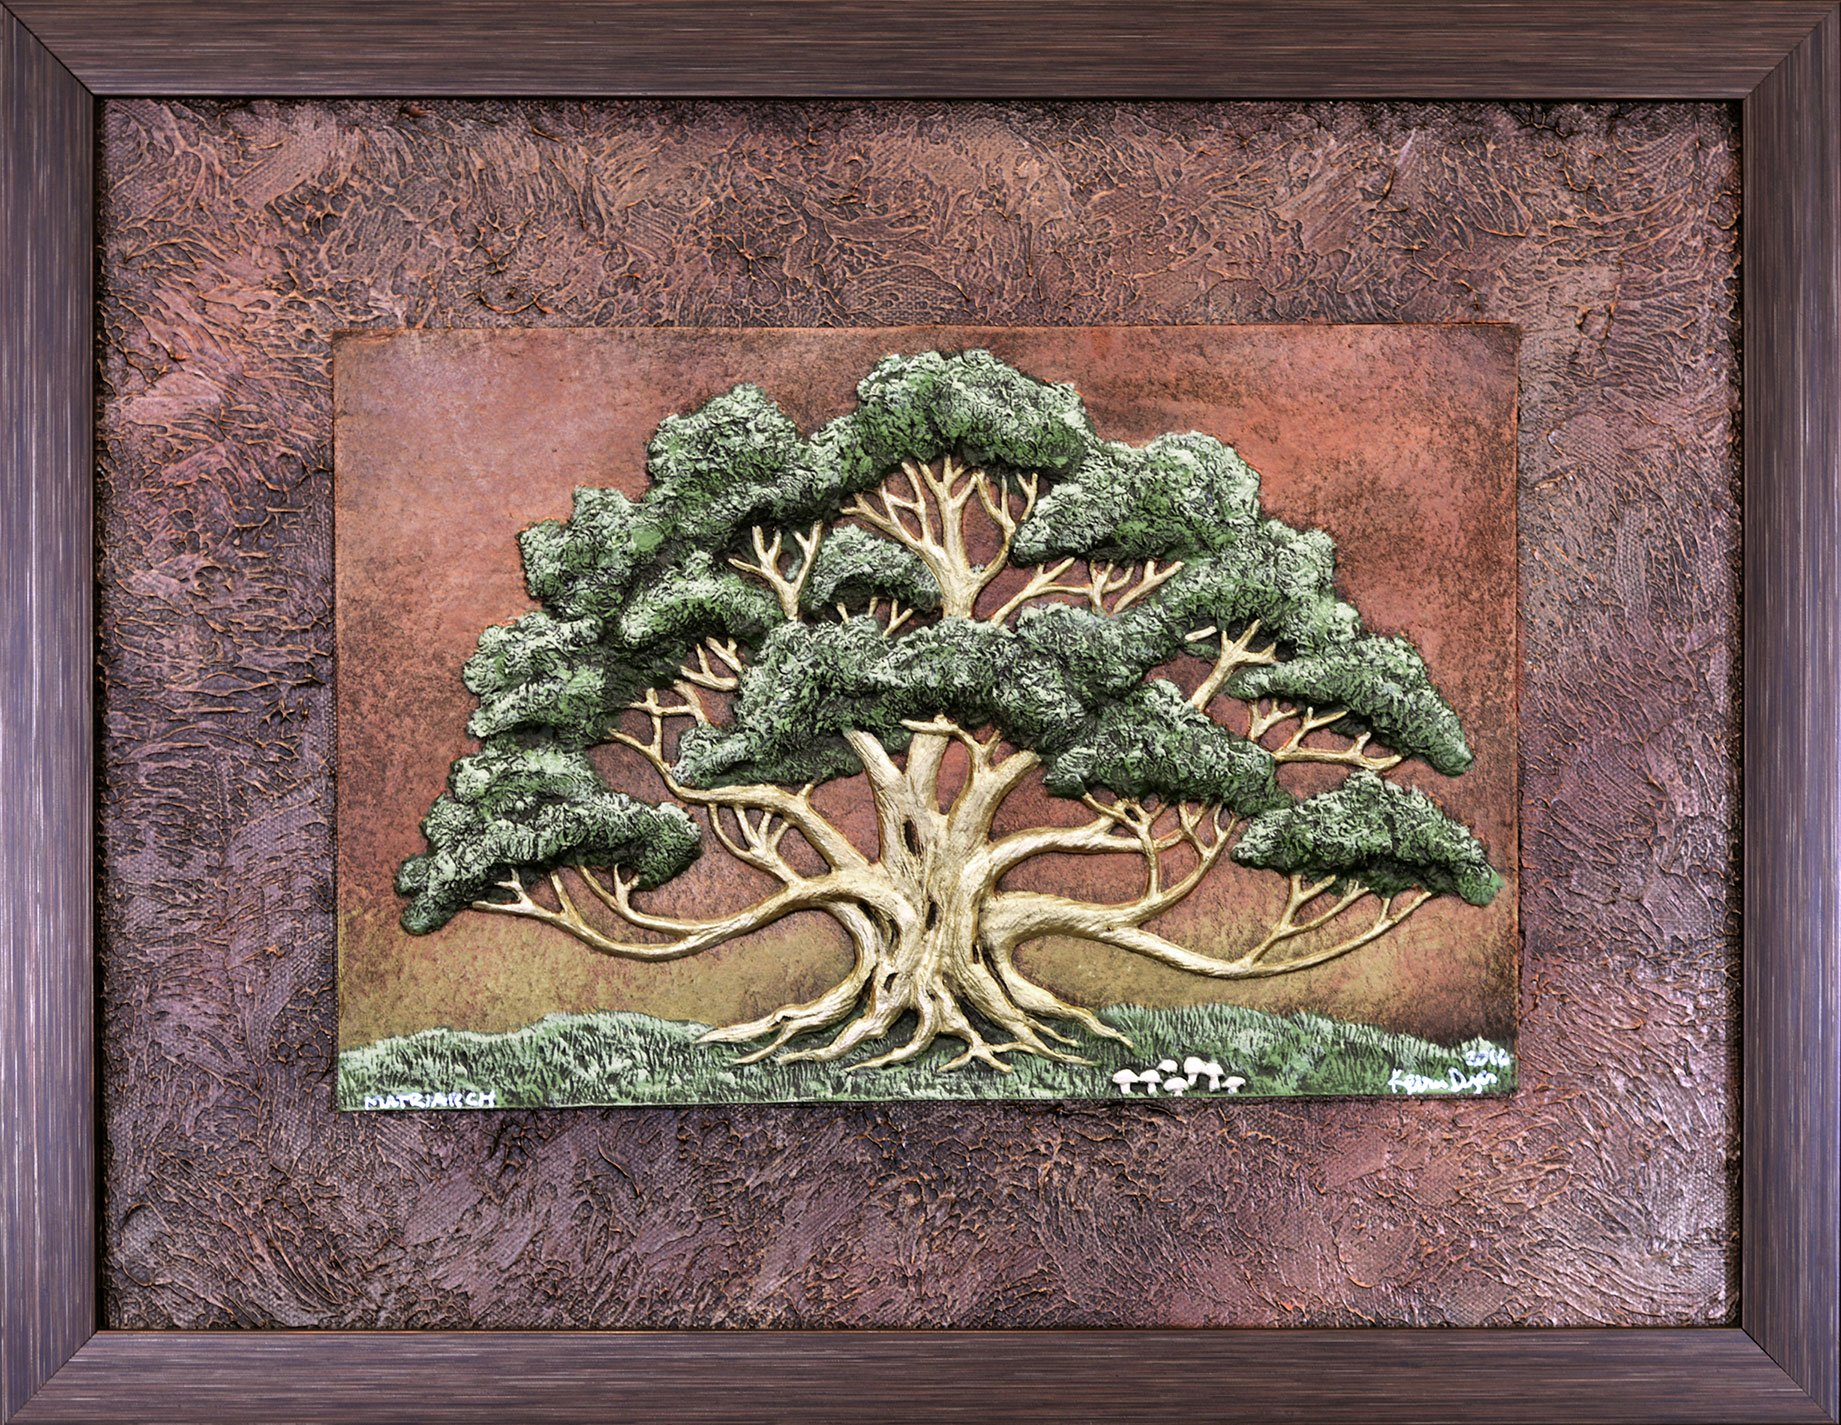 Matriarch - Cast Paper - spreading oak - mother's day - grandmother gift - wall art - nature - tree - landscape